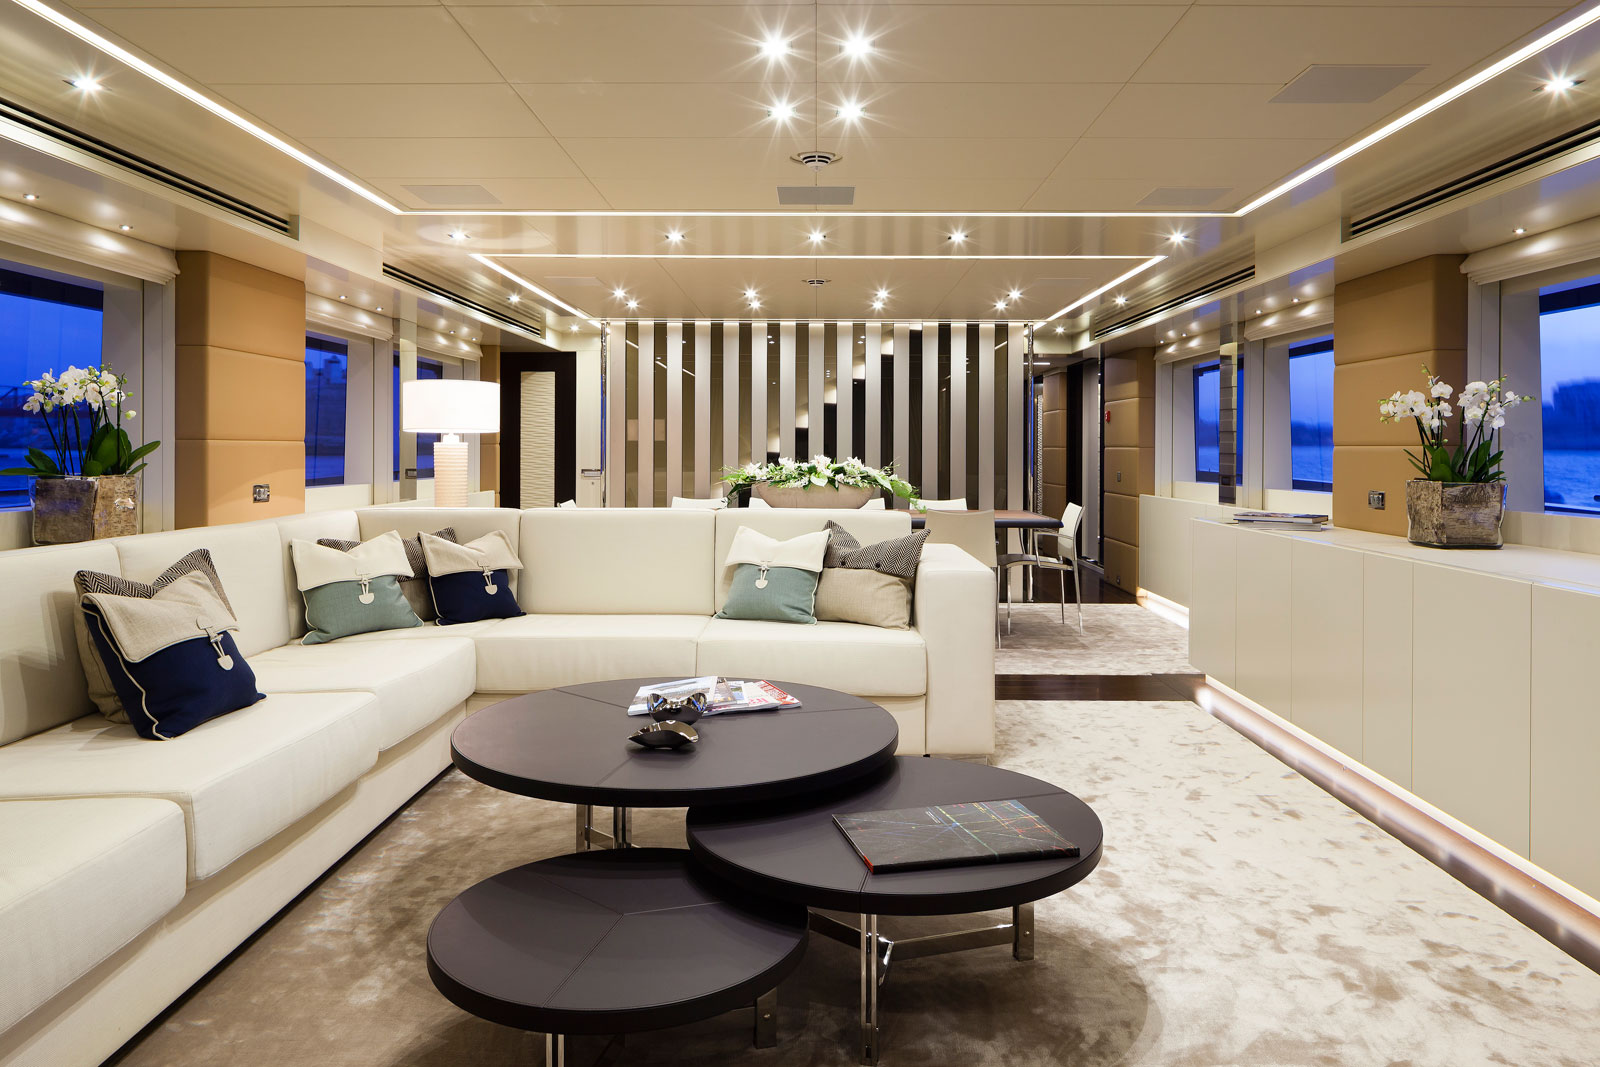 Luxurious Magazine Dives Into The Heart Of The Amore Mio Superyacht 5